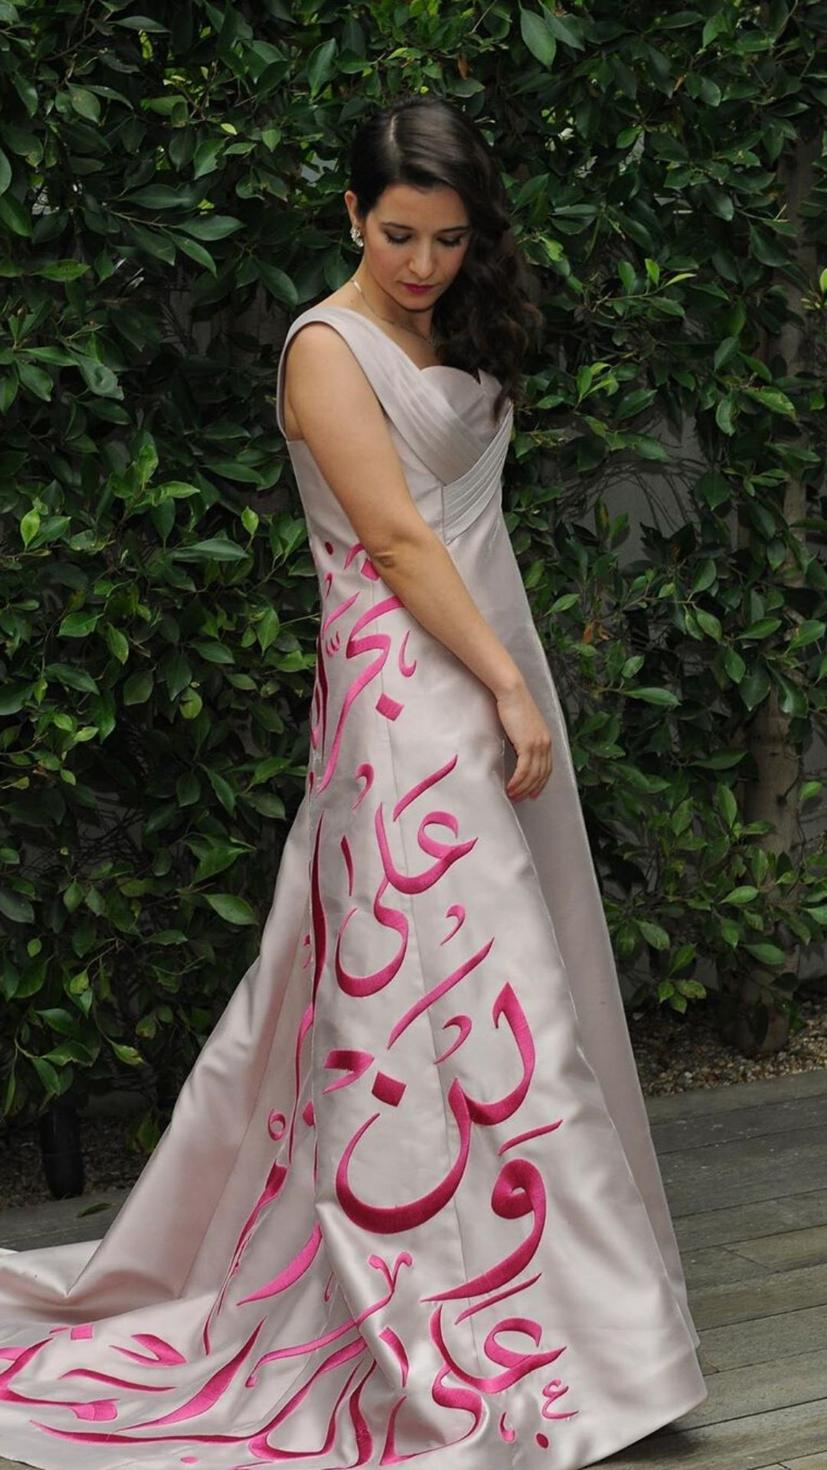 Waad Alkateab, 'For Sama's' director, wears a gown by Syrian designer Reem Masri with calligraphy by Akil Artwork